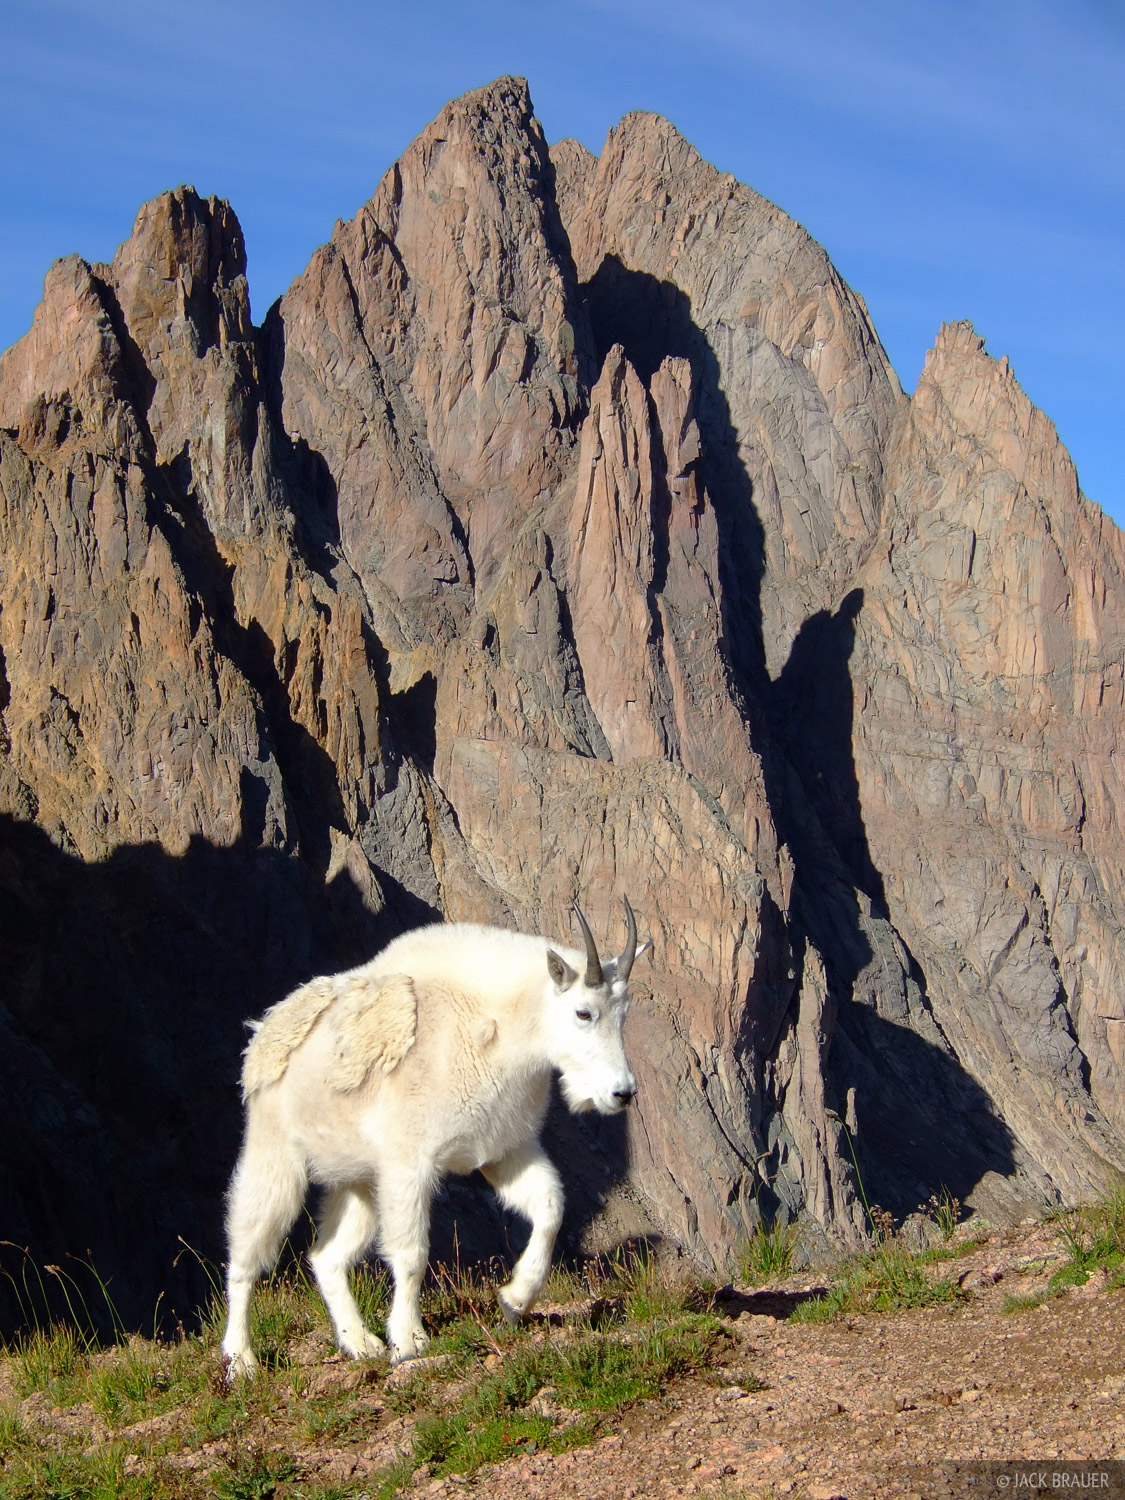 Mountain goat, Turret Needles, Weminuche Wilderness, Colorado, photo